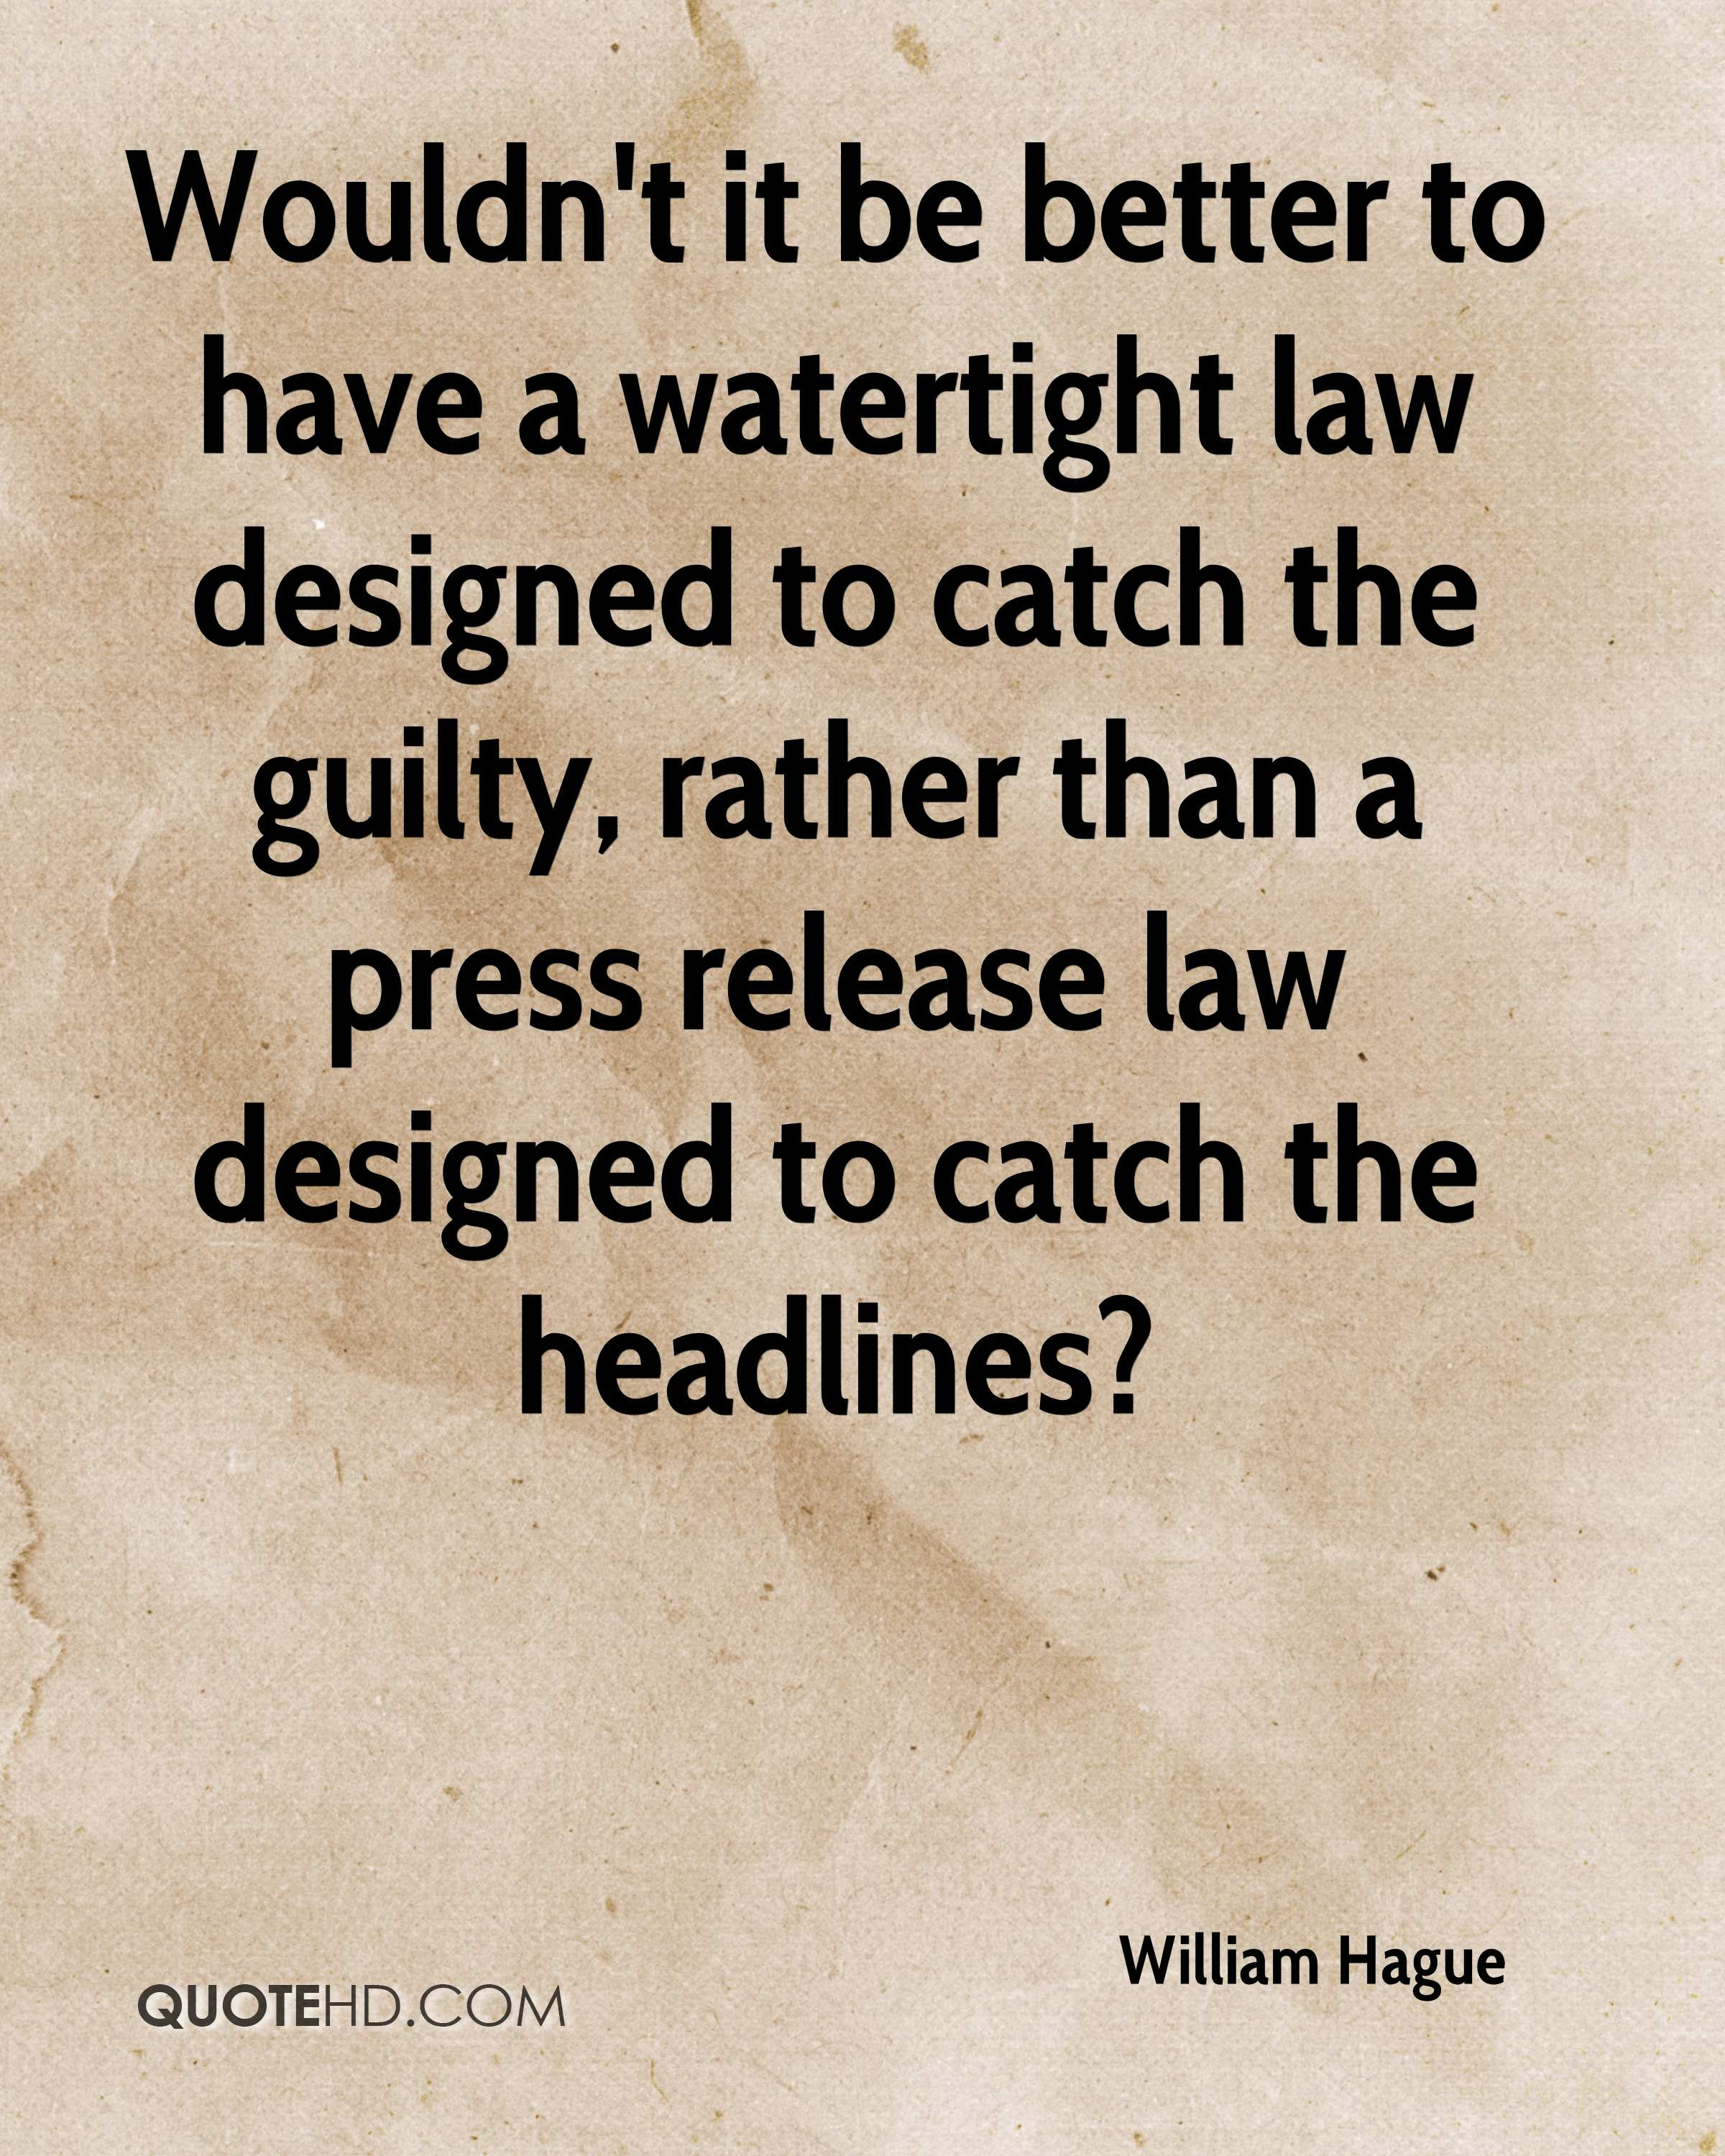 Wouldn't it be better to have a watertight law designed to catch the guilty, rather than a press release law designed to catch the headlines?